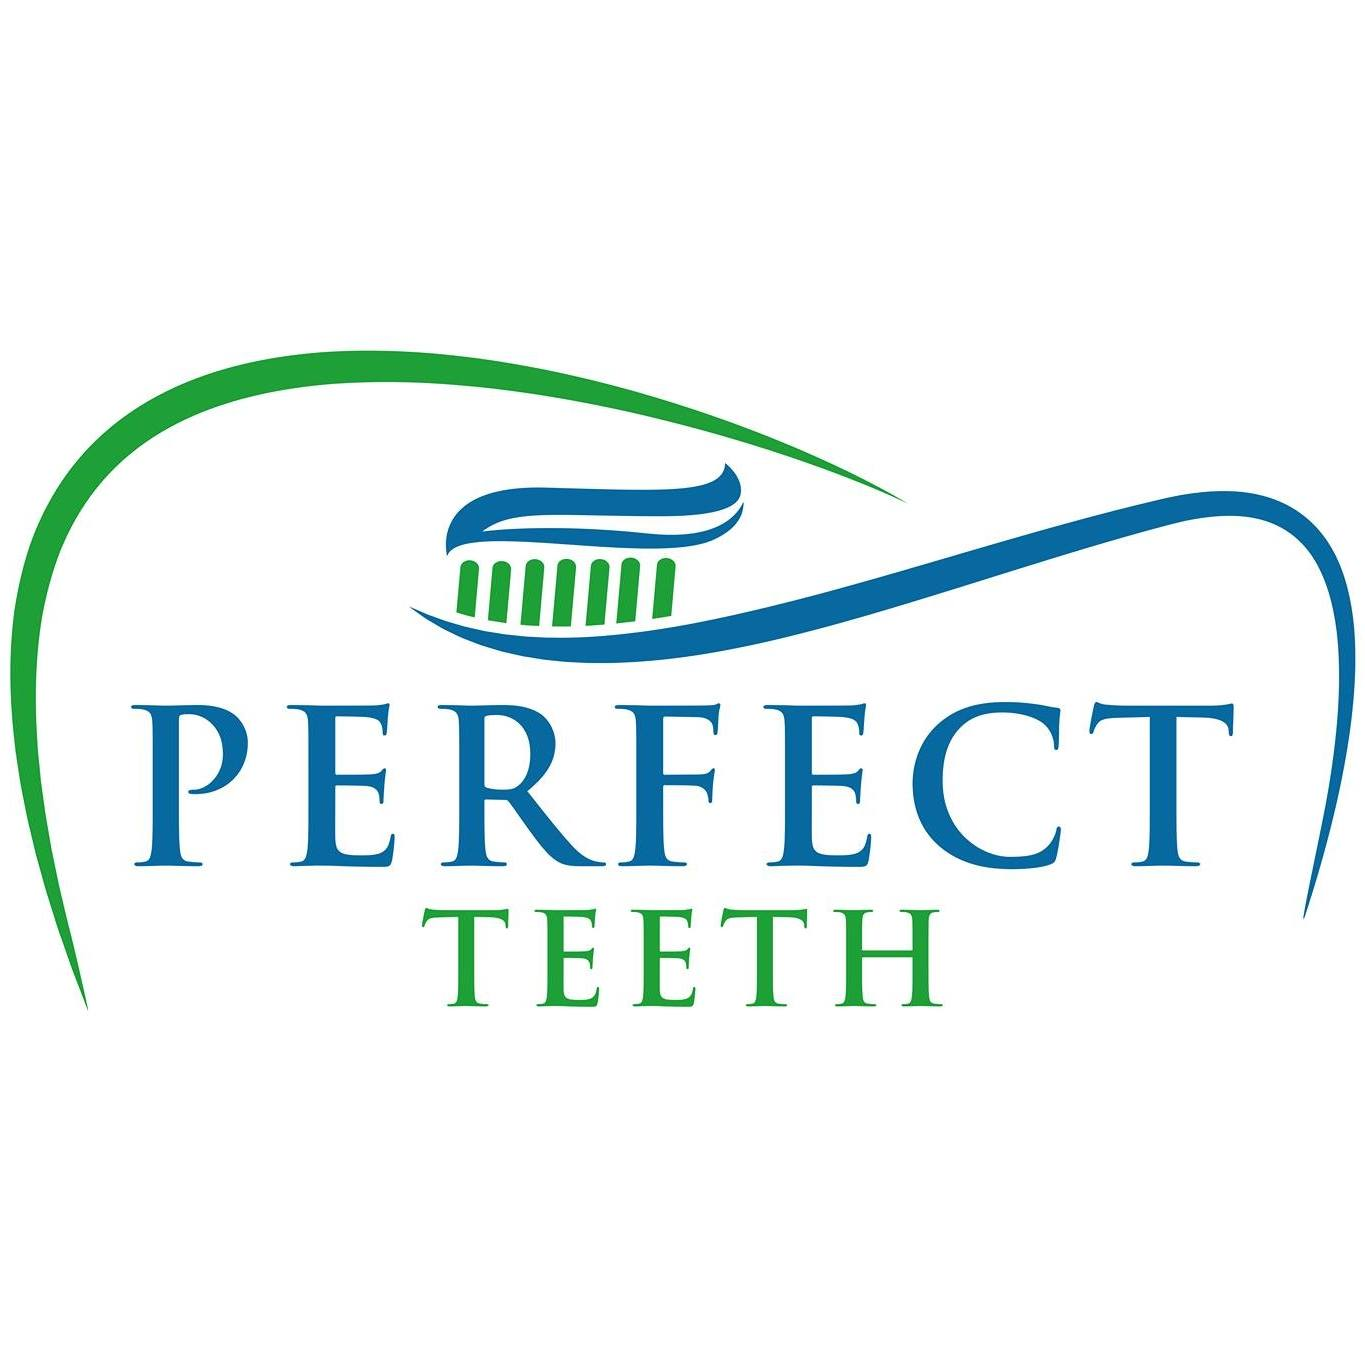 Business logo of Perfect Teeth